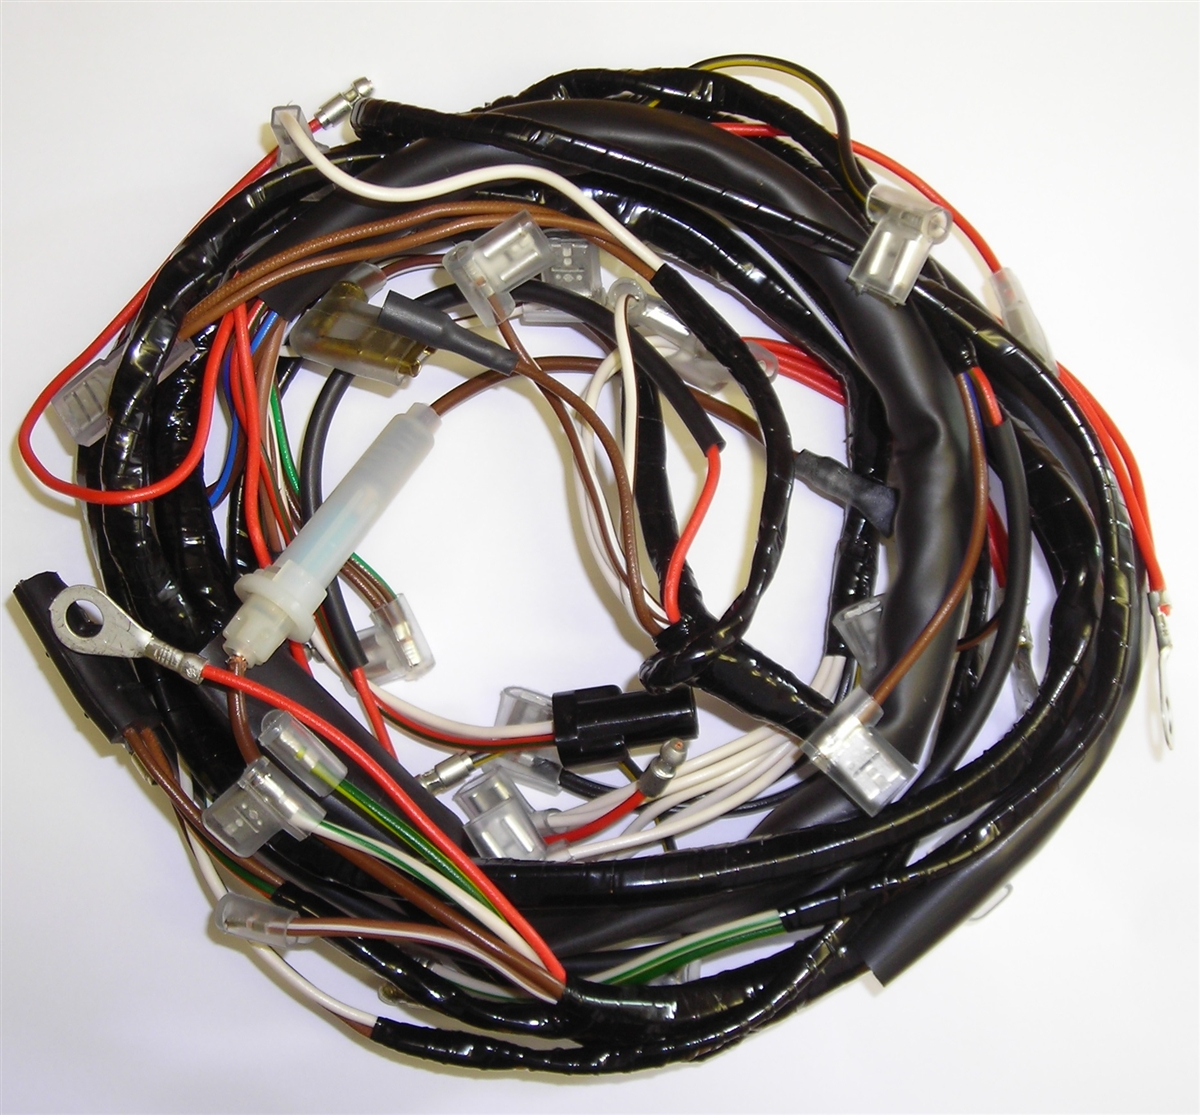 How To Make A Wiring Harness For A Motorcycle Motorcycle Wiring